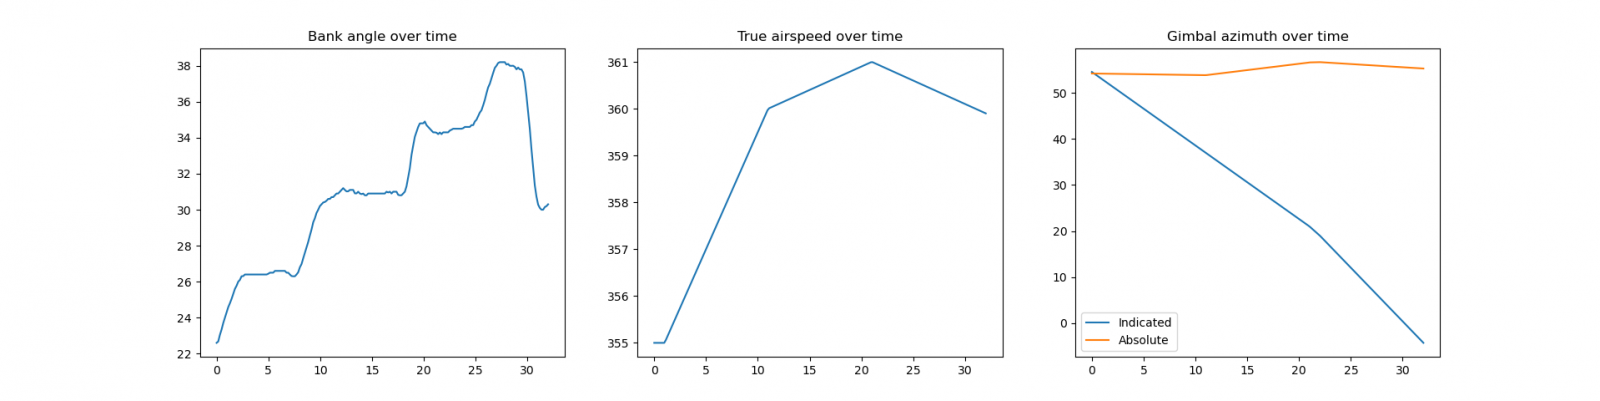 data-no-wind-mba.png